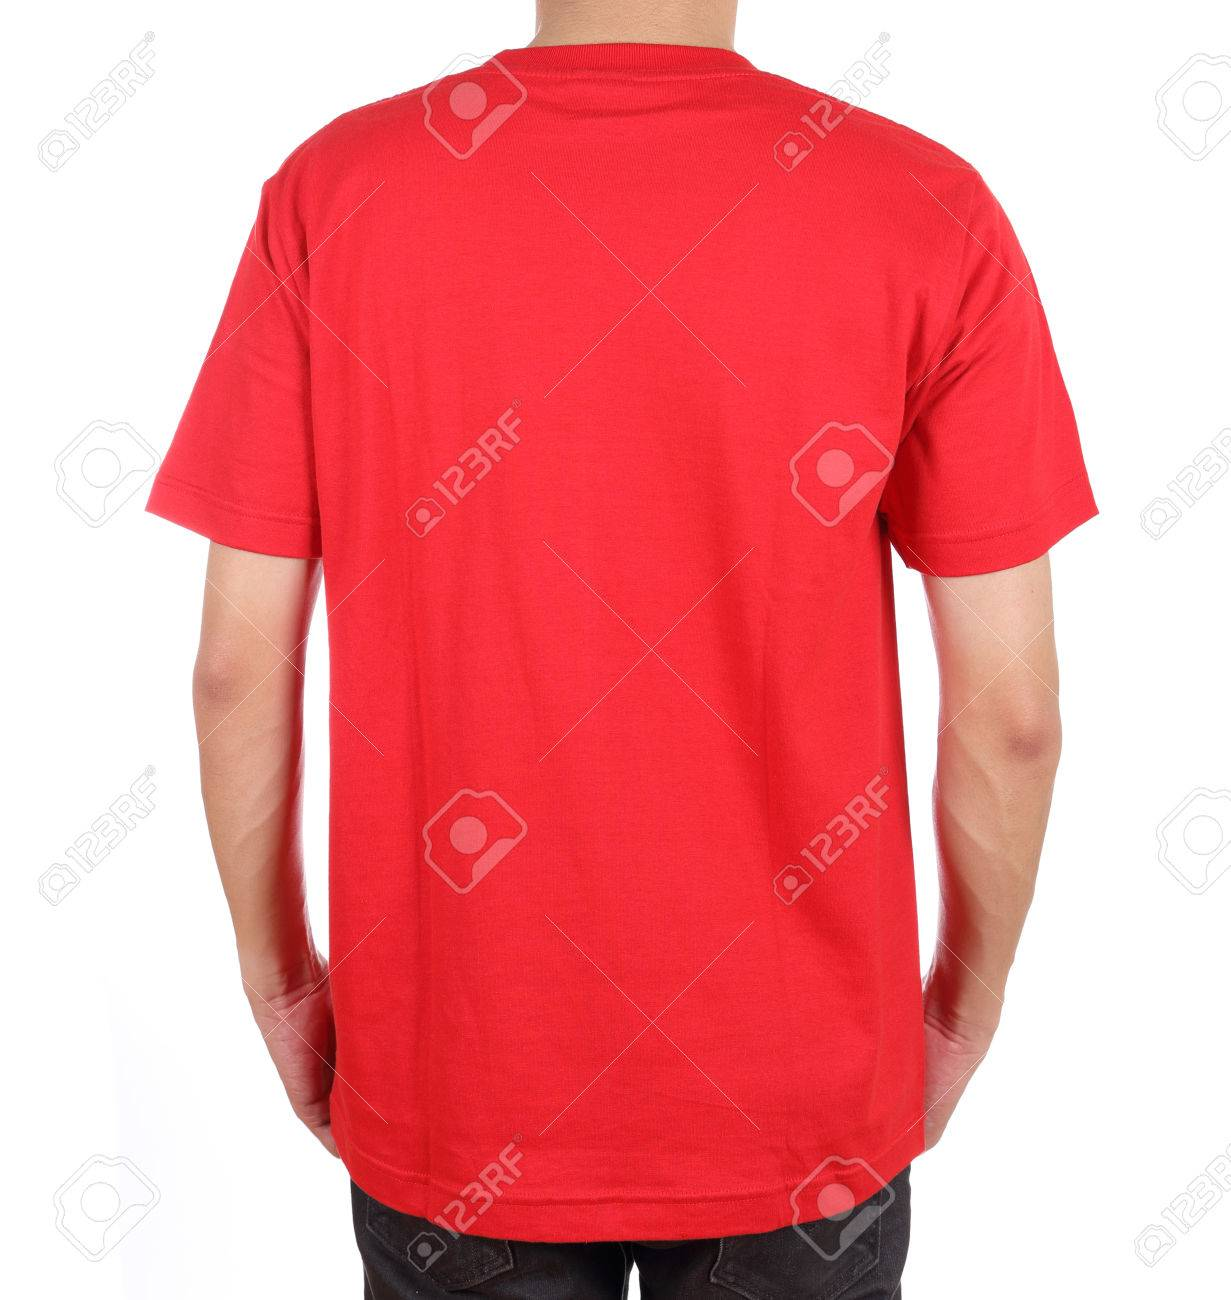 3f4769ec blank red t-shirt on man (back side) isolated on white background Stock